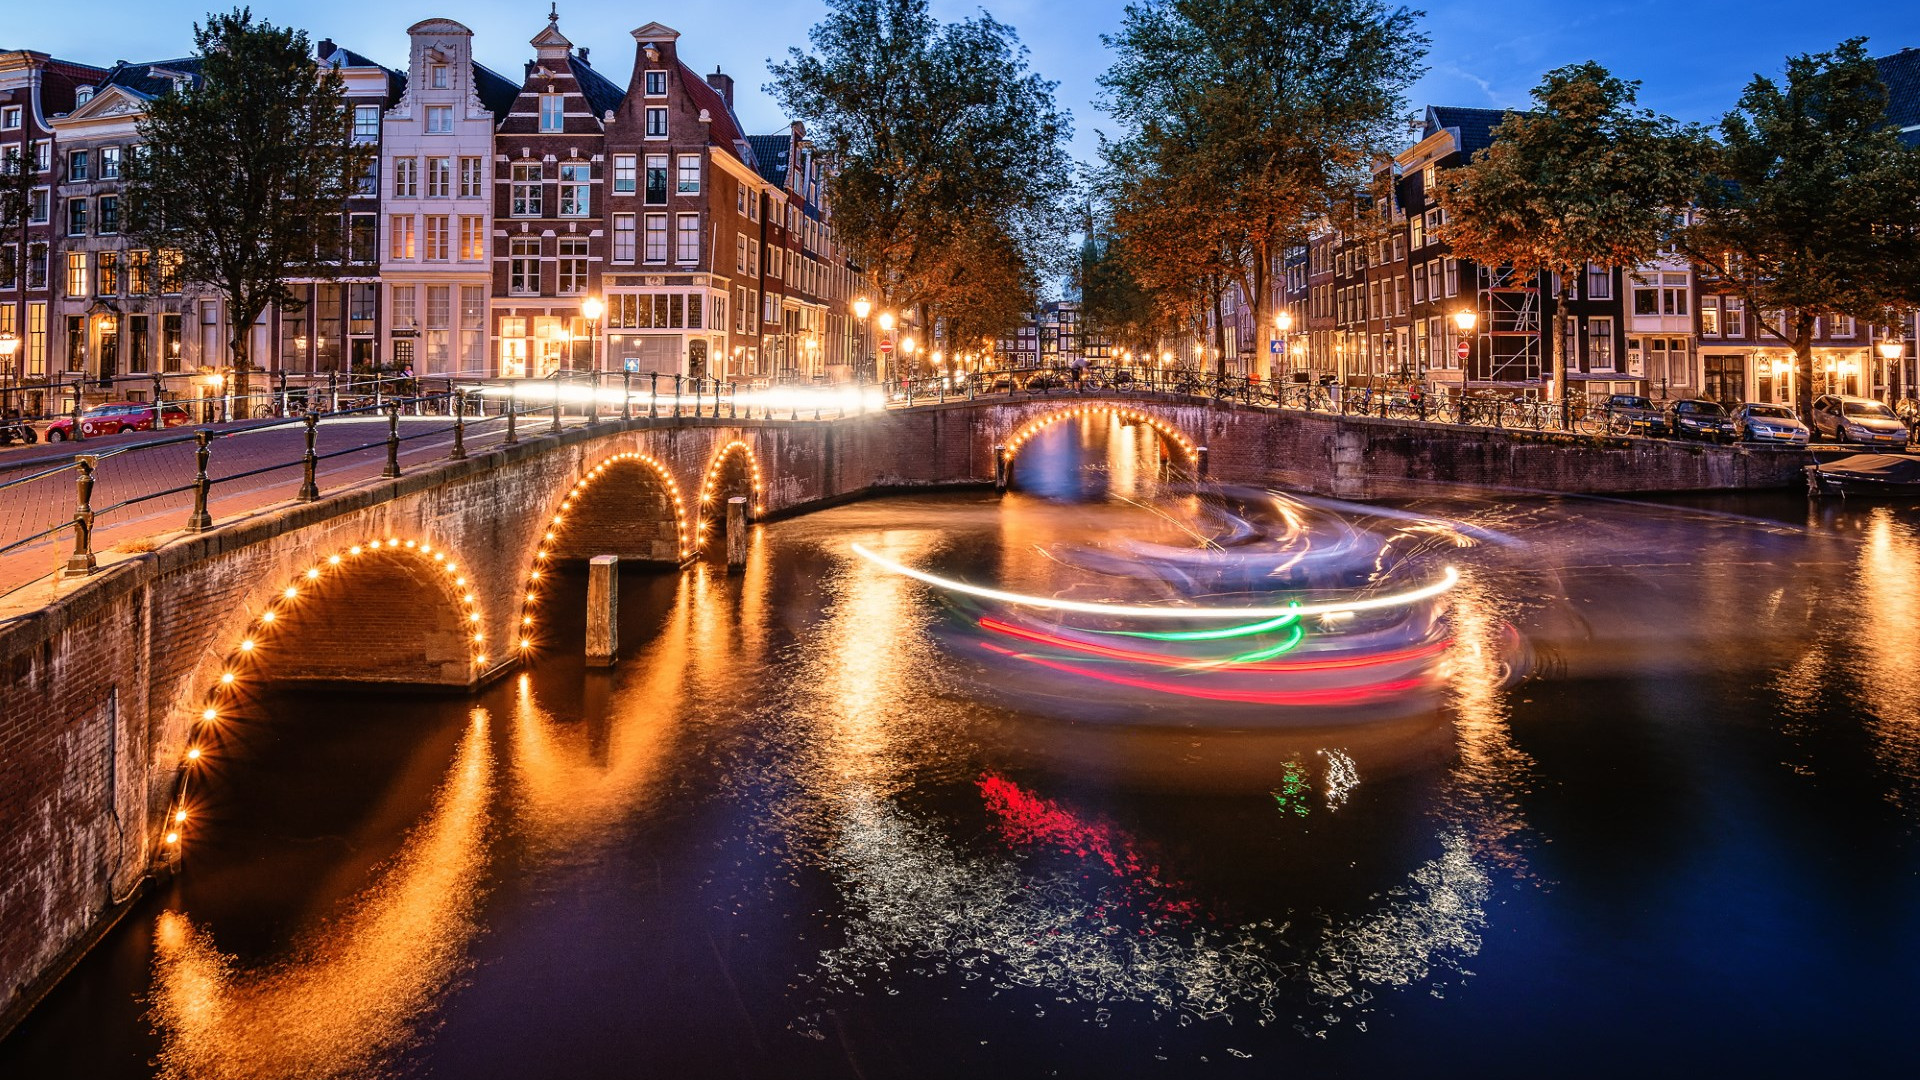 Terms Of Use >> Download wallpaper: Amsterdam by night 1920x1080